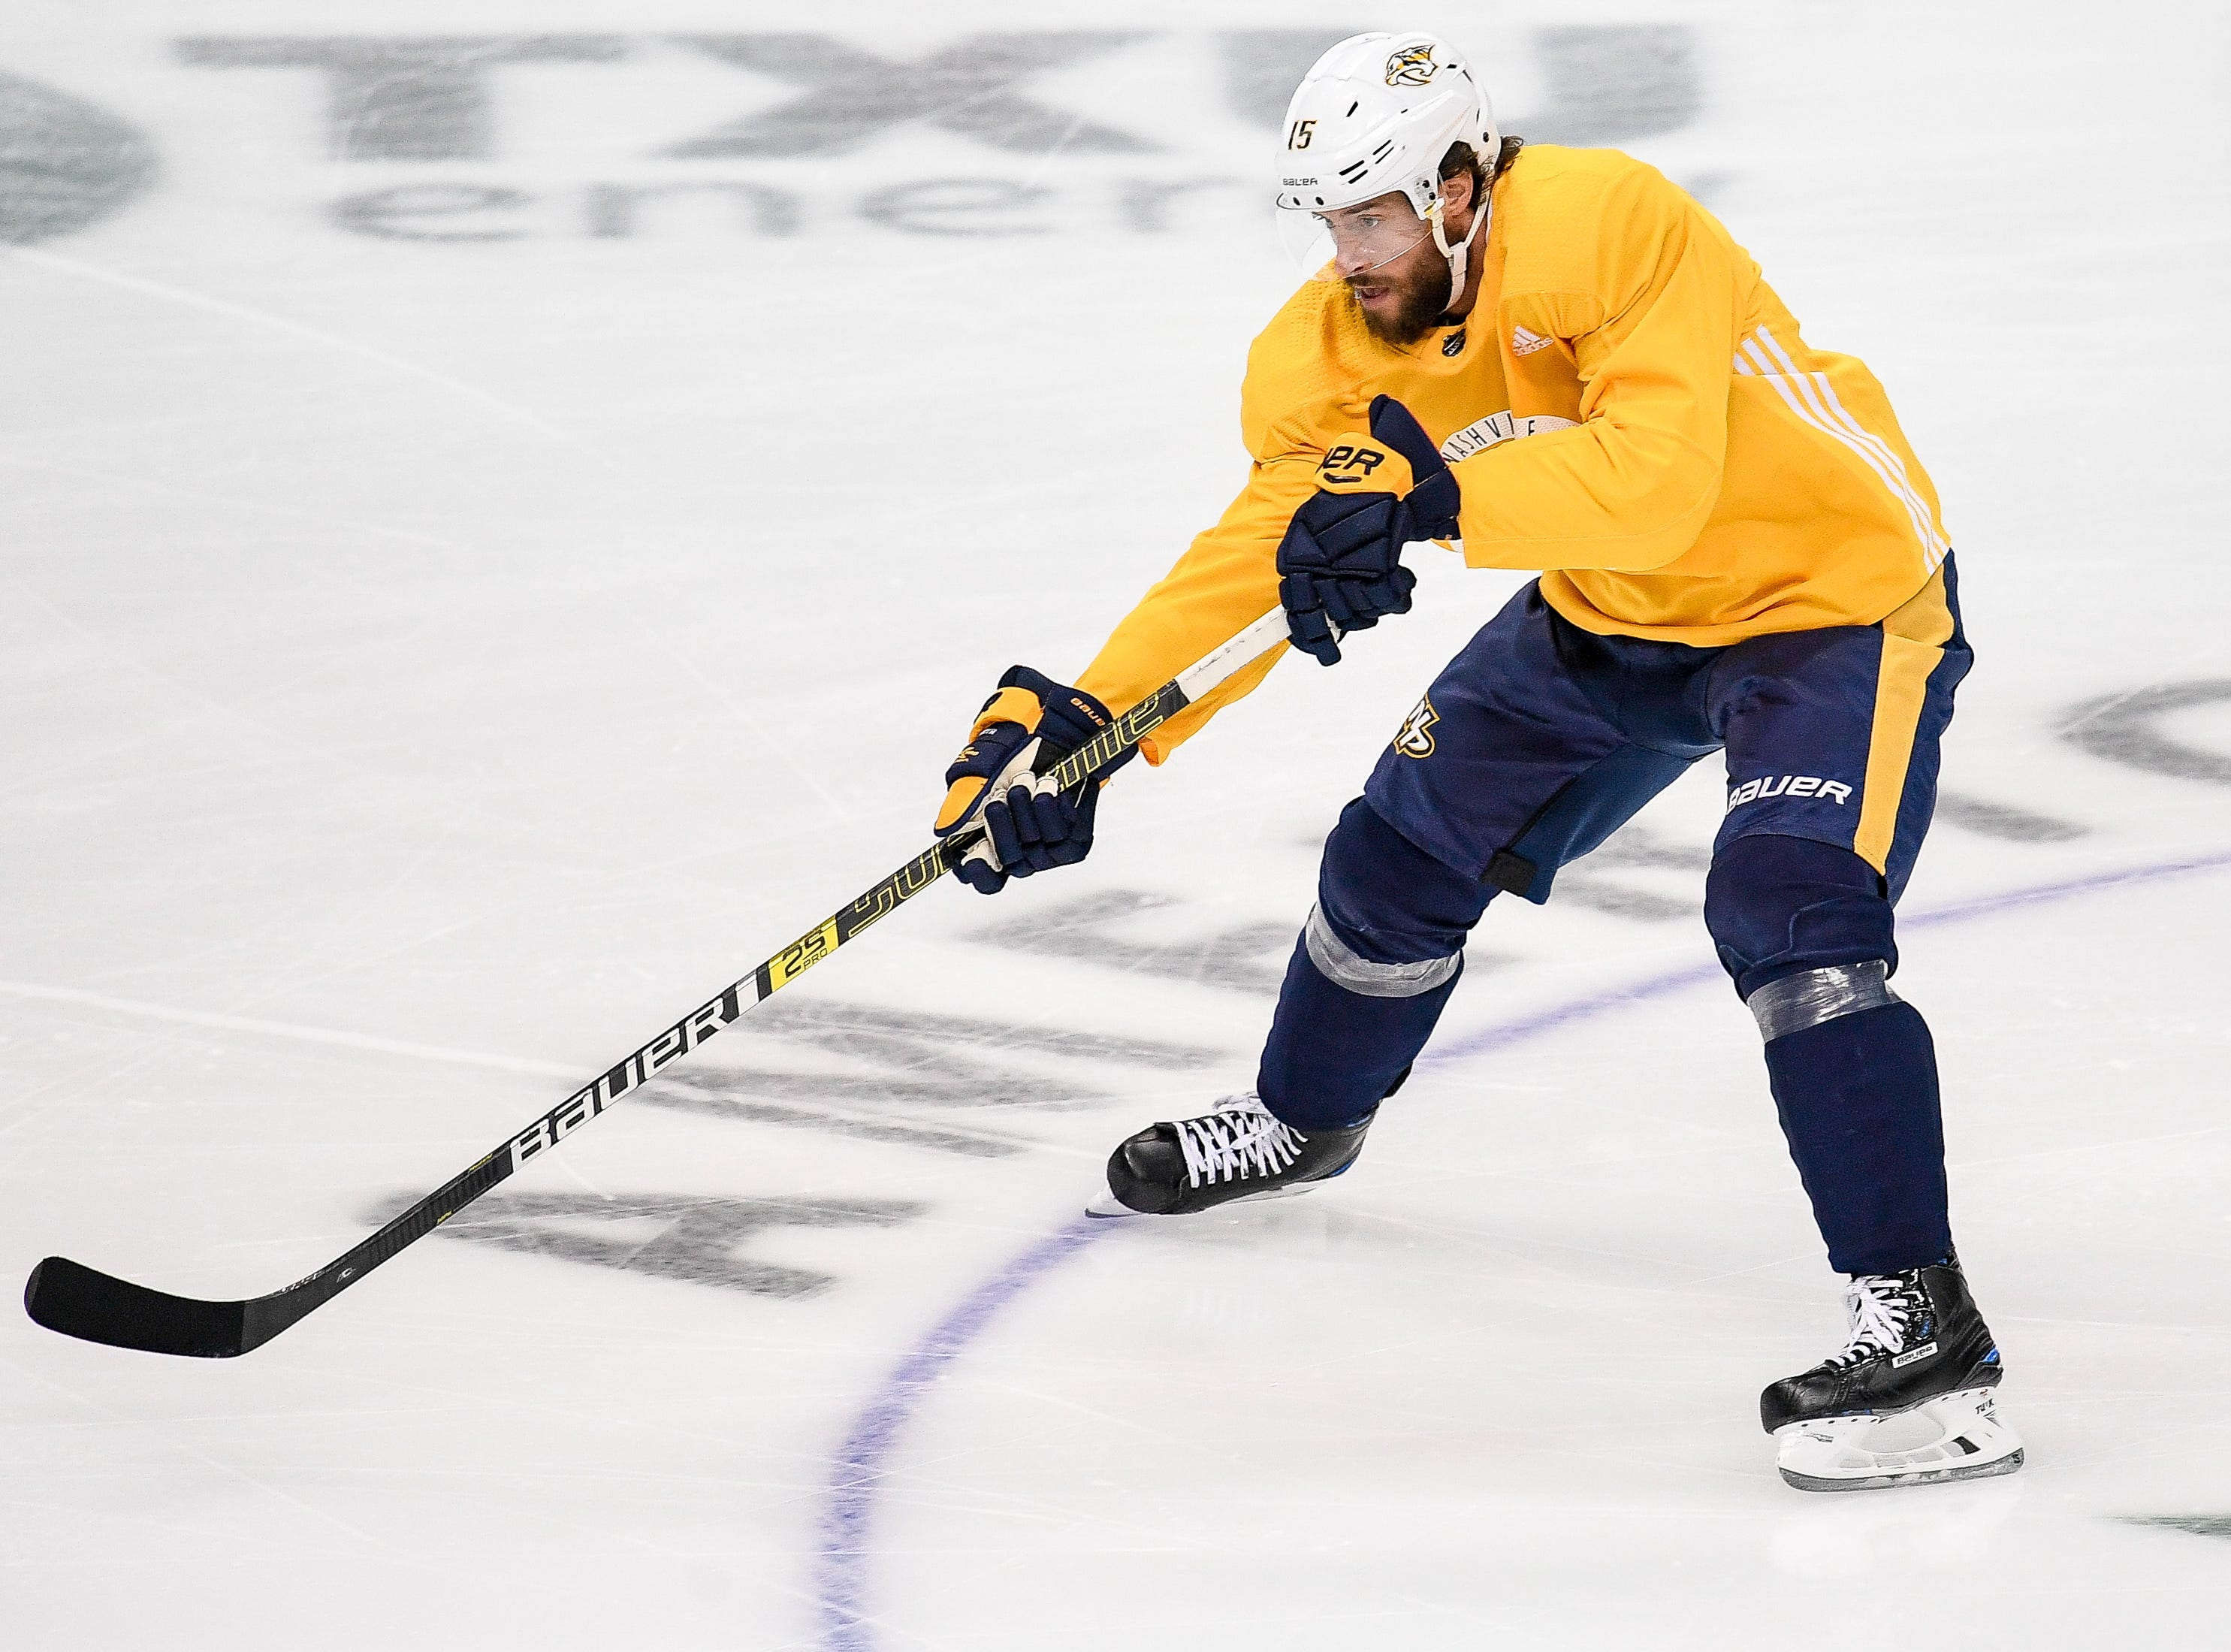 Nashville Predators right wing Craig Smith (15) skates during practice before the divisional semifinal game against the Dallas Stars at the American Airlines Center in Dallas, Texas, Monday, April 22, 2019.